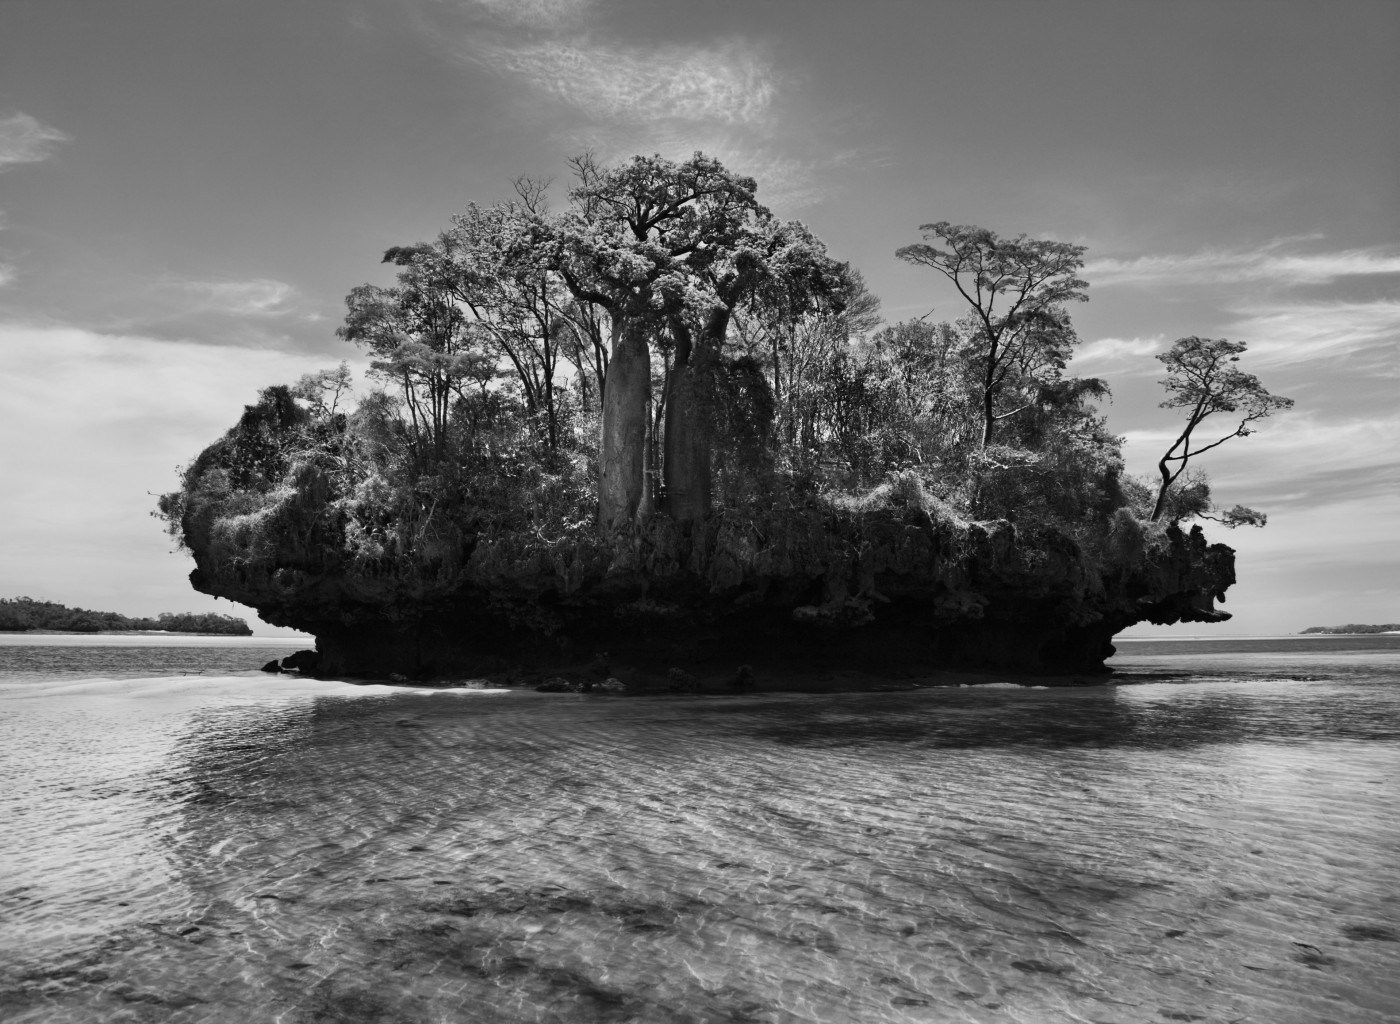 Sebastião Salgado , </span><span><em>Baobab trees. Bay of Moramba. Madagascar</em>, </span><span>2010 Courtesy of Amazonas Images